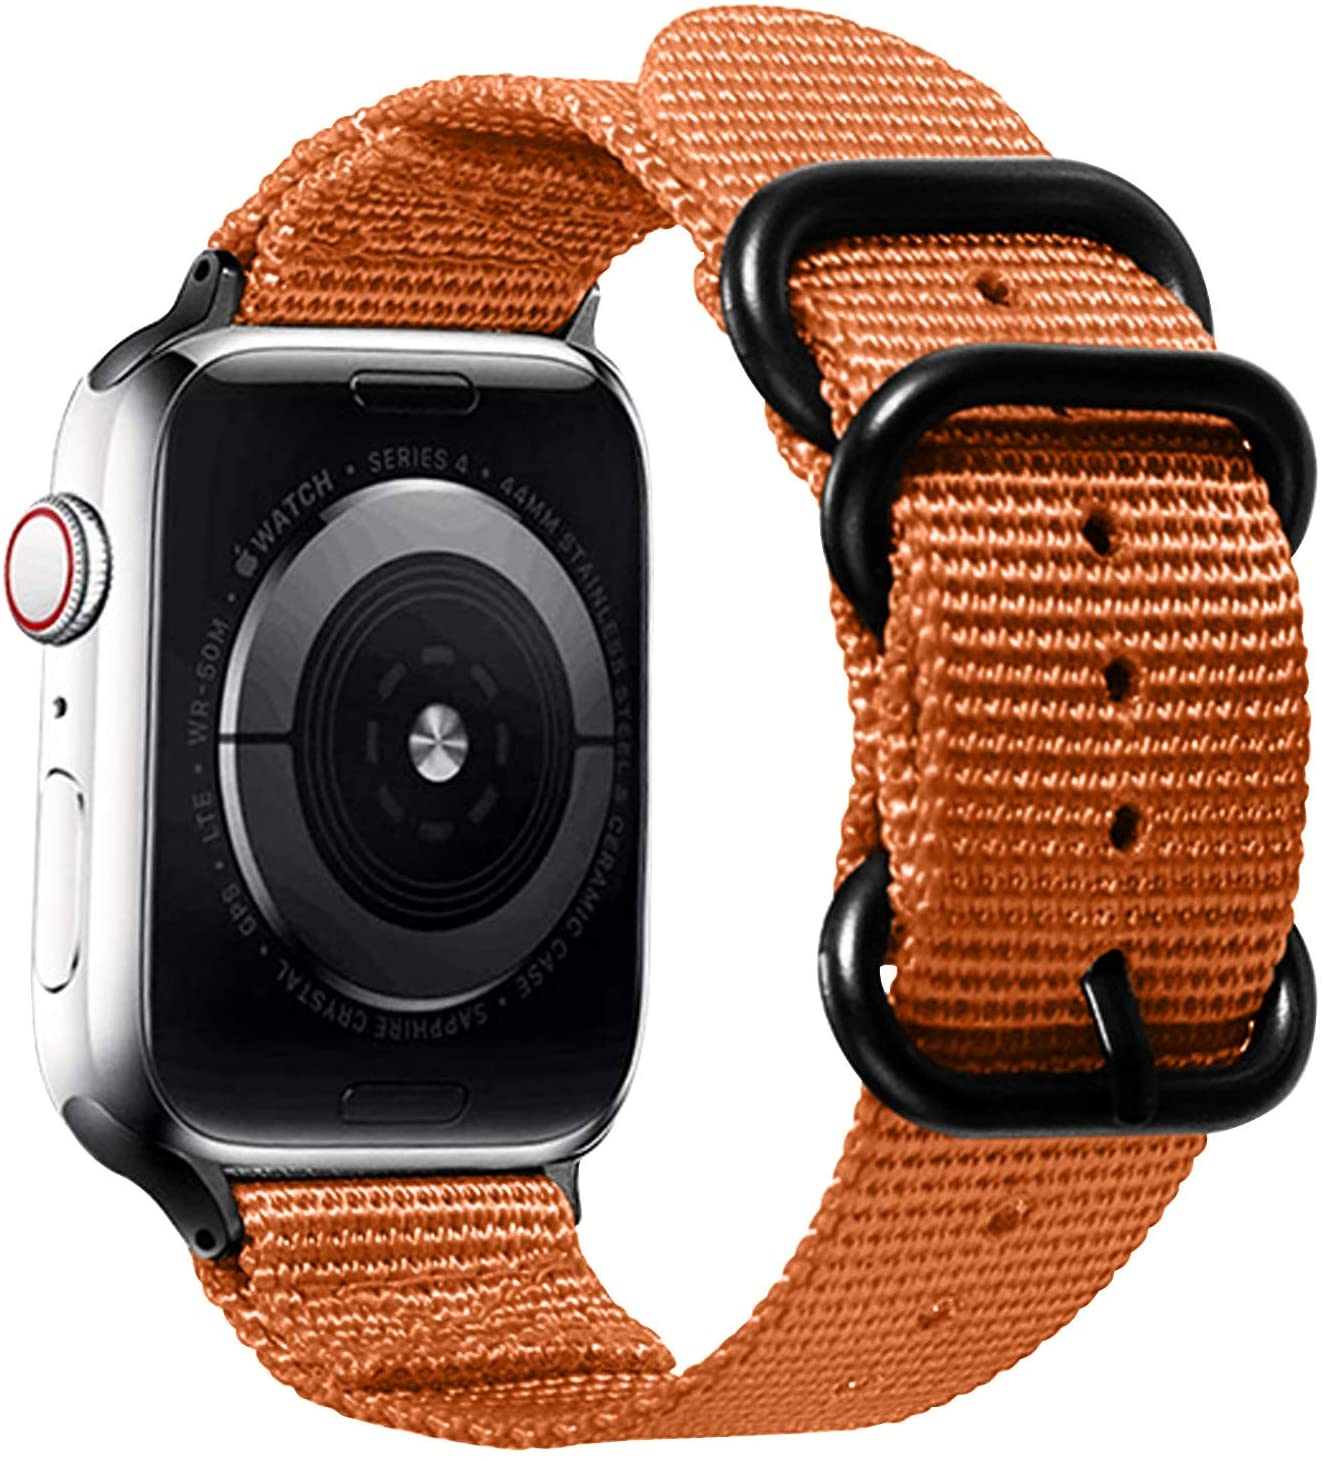 Watpro Compatible with Apple Watch Band 38mm 40mm 42mm 44mm Women Men Nylon Rugged Replacement iWatch Band Military-Style Buckle Grey Adapters for Sport Series 5 4 3 2 1 (1-Orange, 38MM/40MM)